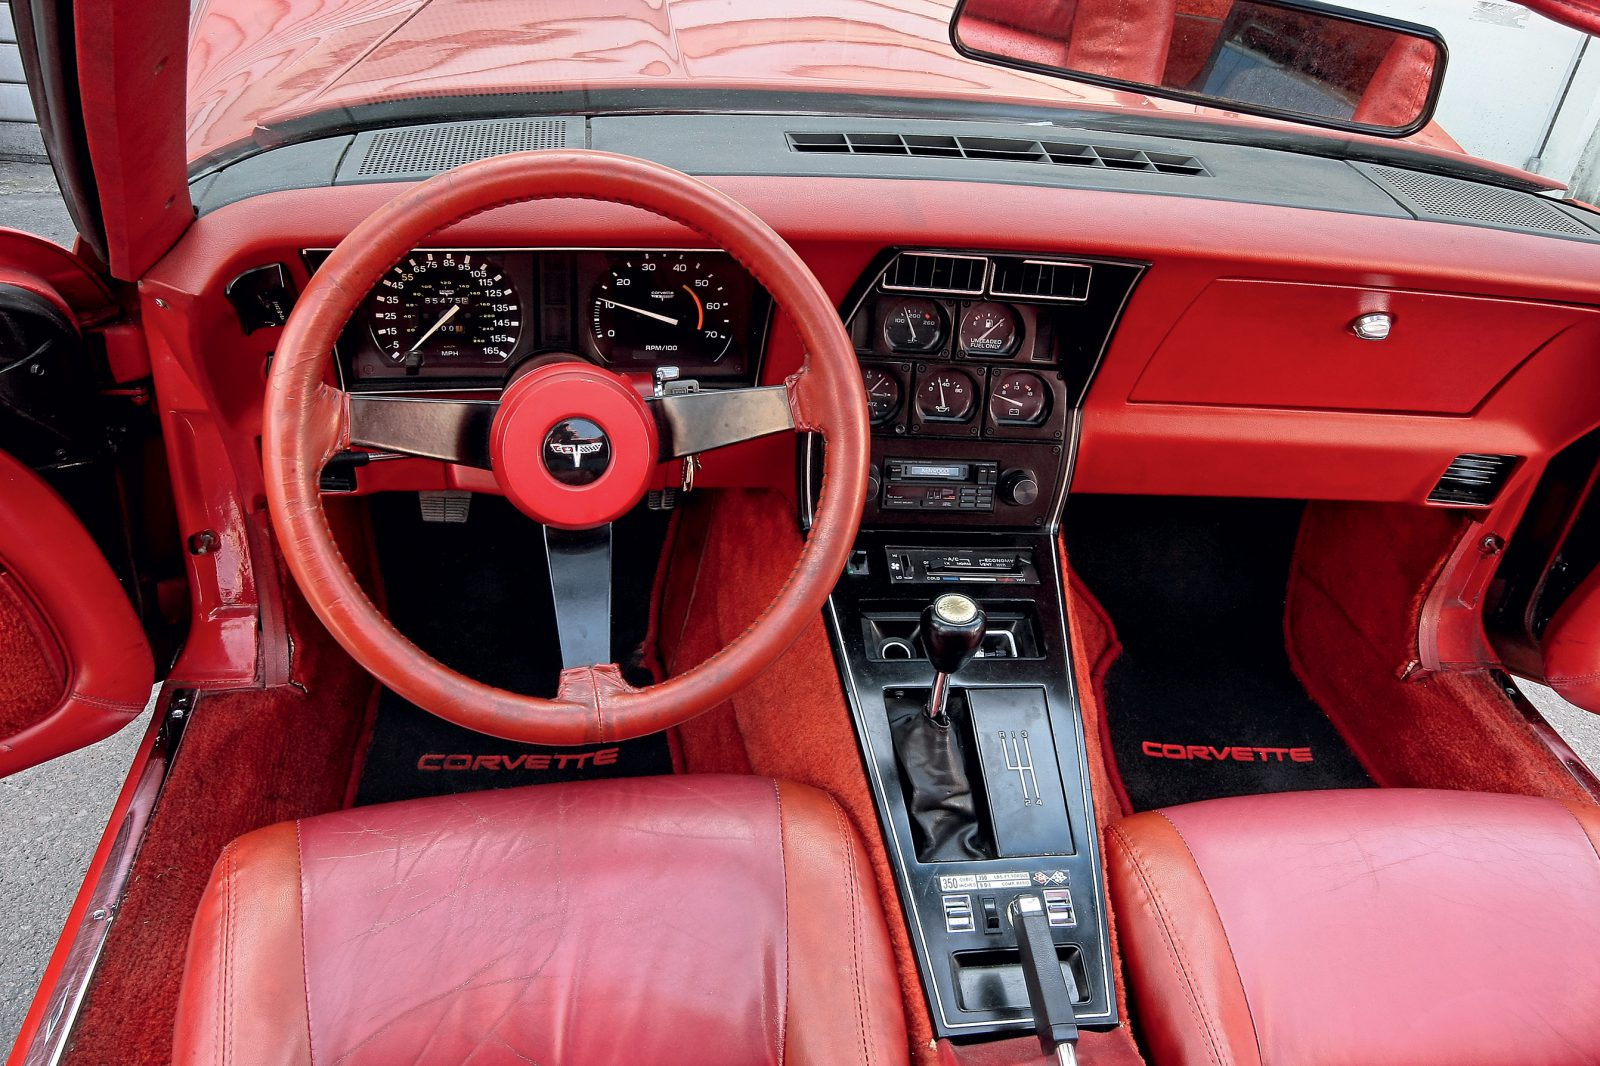 Chevrolet Corvette C3 interieur